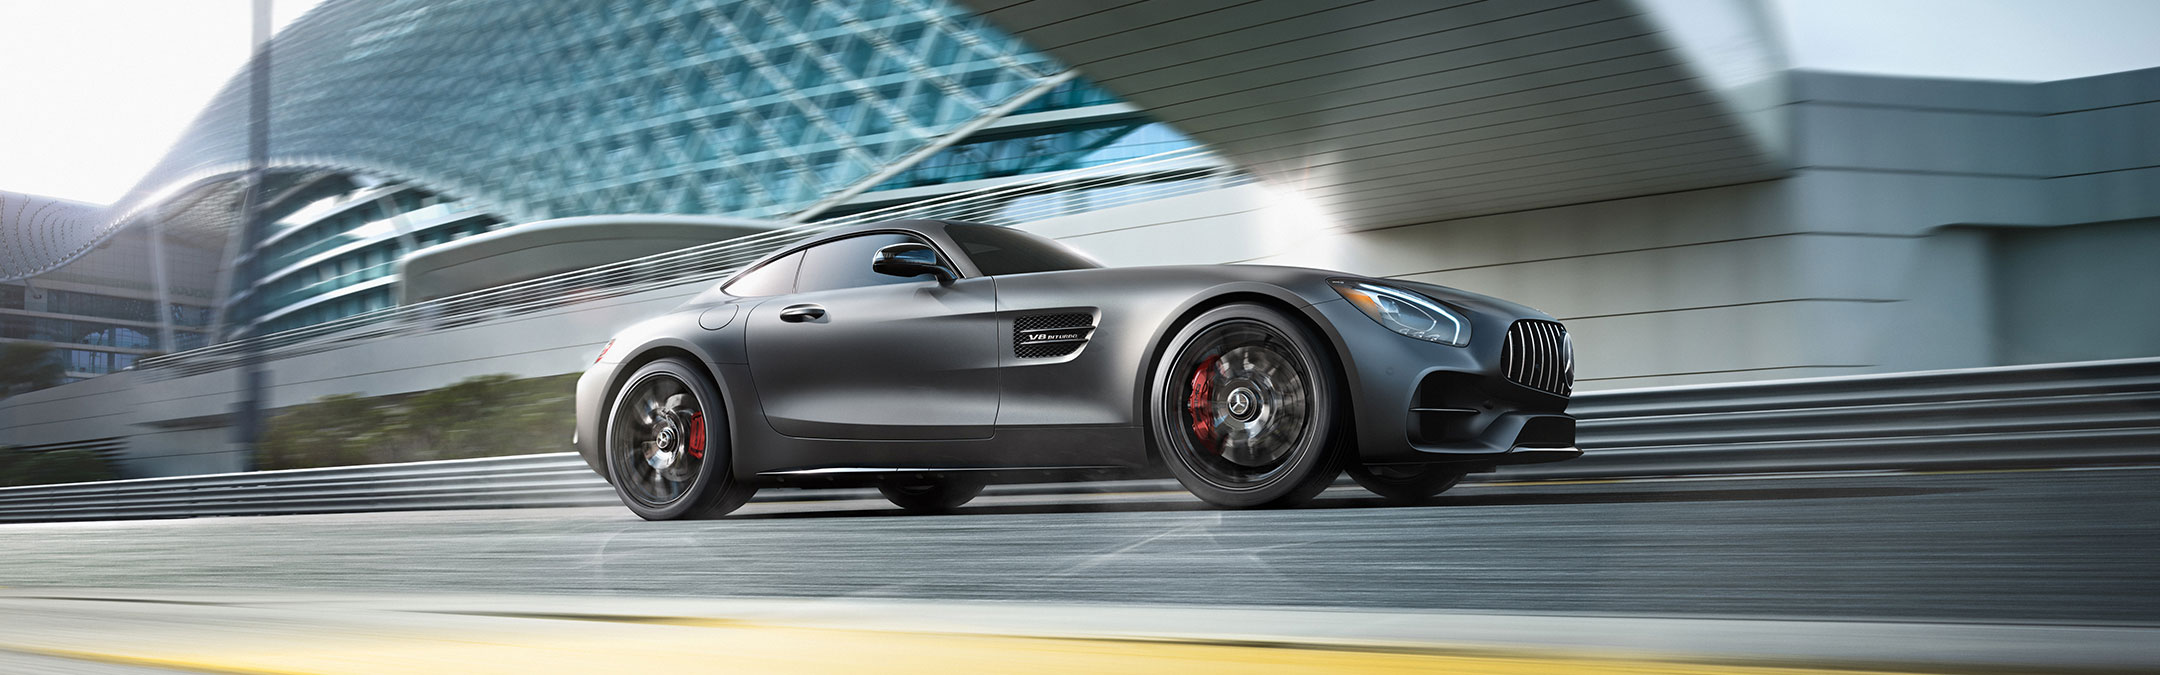 MBCAN-2018-AMG-GT-COUPE-CATEGORY-HERO-2-1-DR.jpg